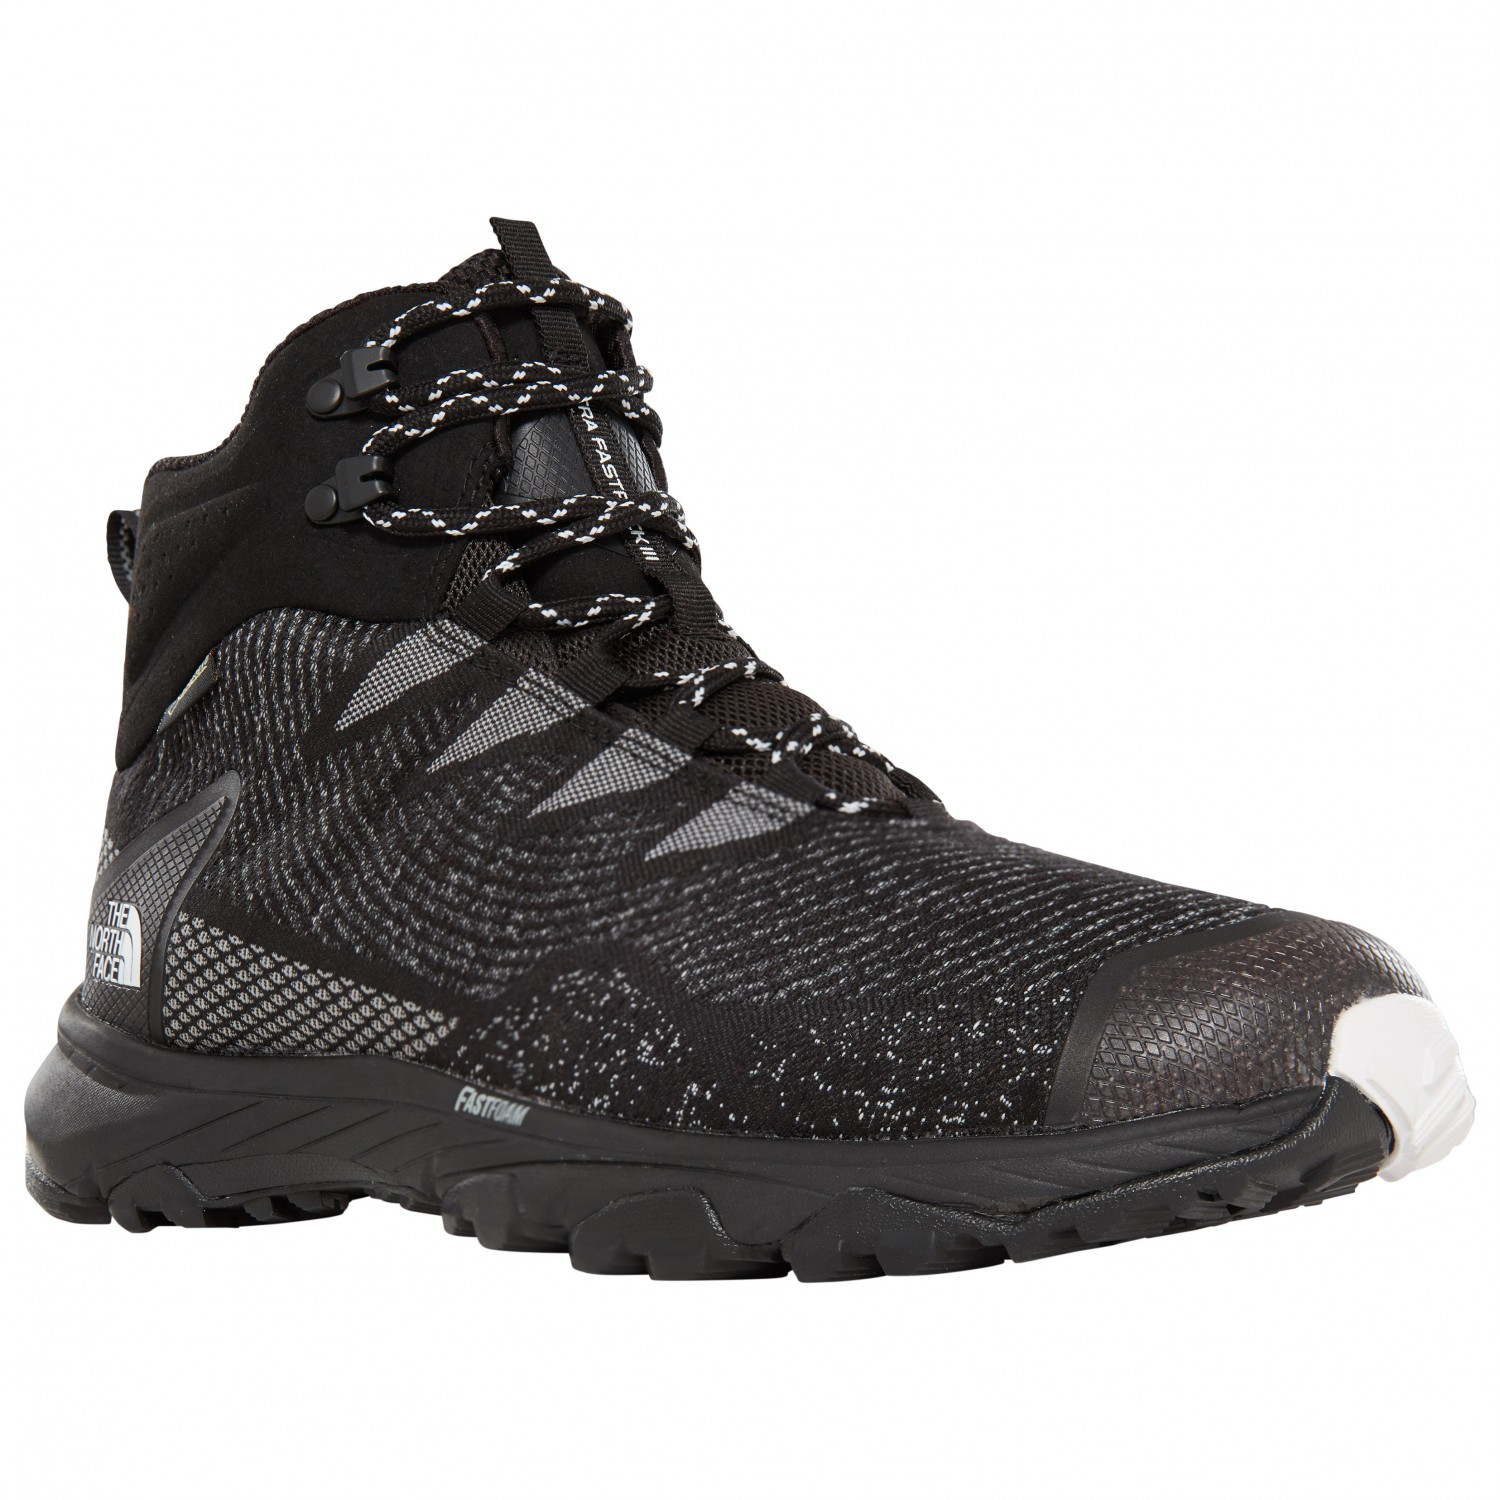 The North Face Ultra Fastpack III Mid GTX Woven - Walking Boots ... 01ccc8f1f3d